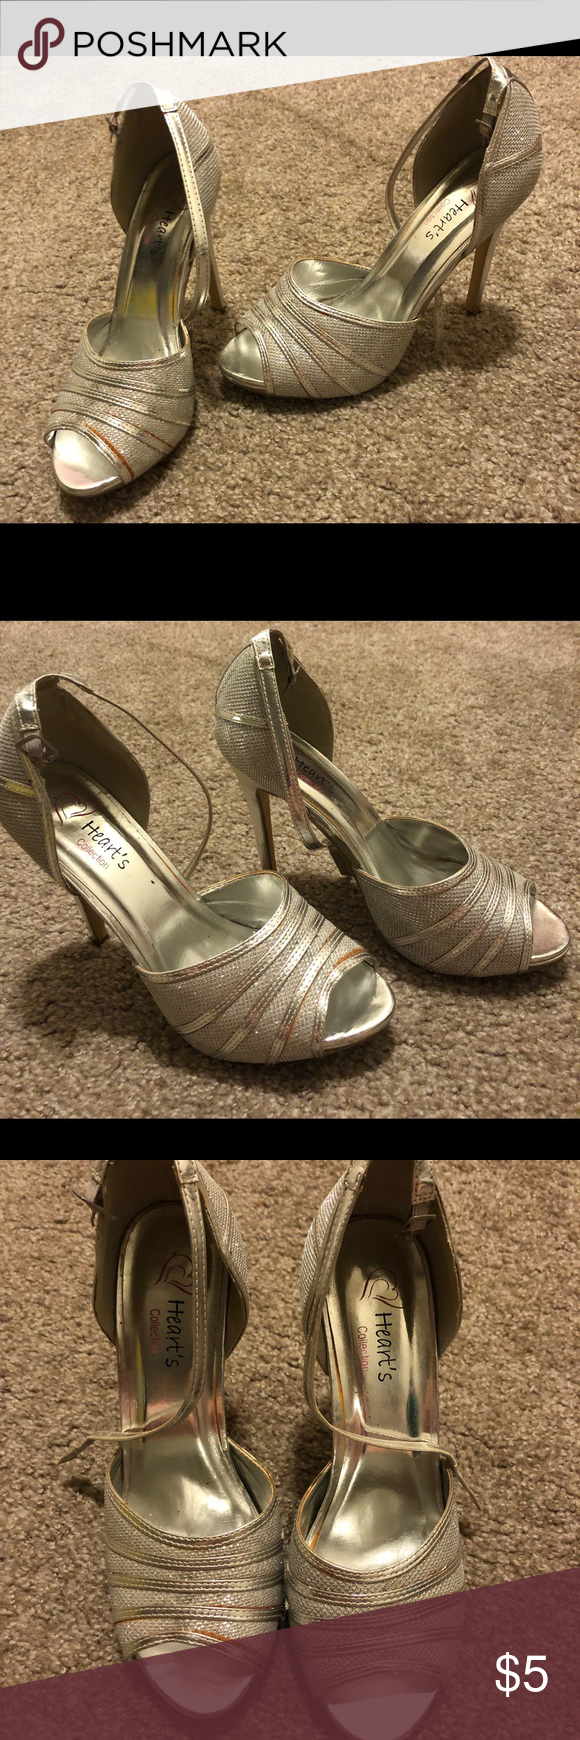 Used Silver High Heels Size 8 Some Color Chipping But Nothing Some Silver Paint Furniture Marker Can T Sparkly Silver High Heels Silver High Heels Heart Shoes